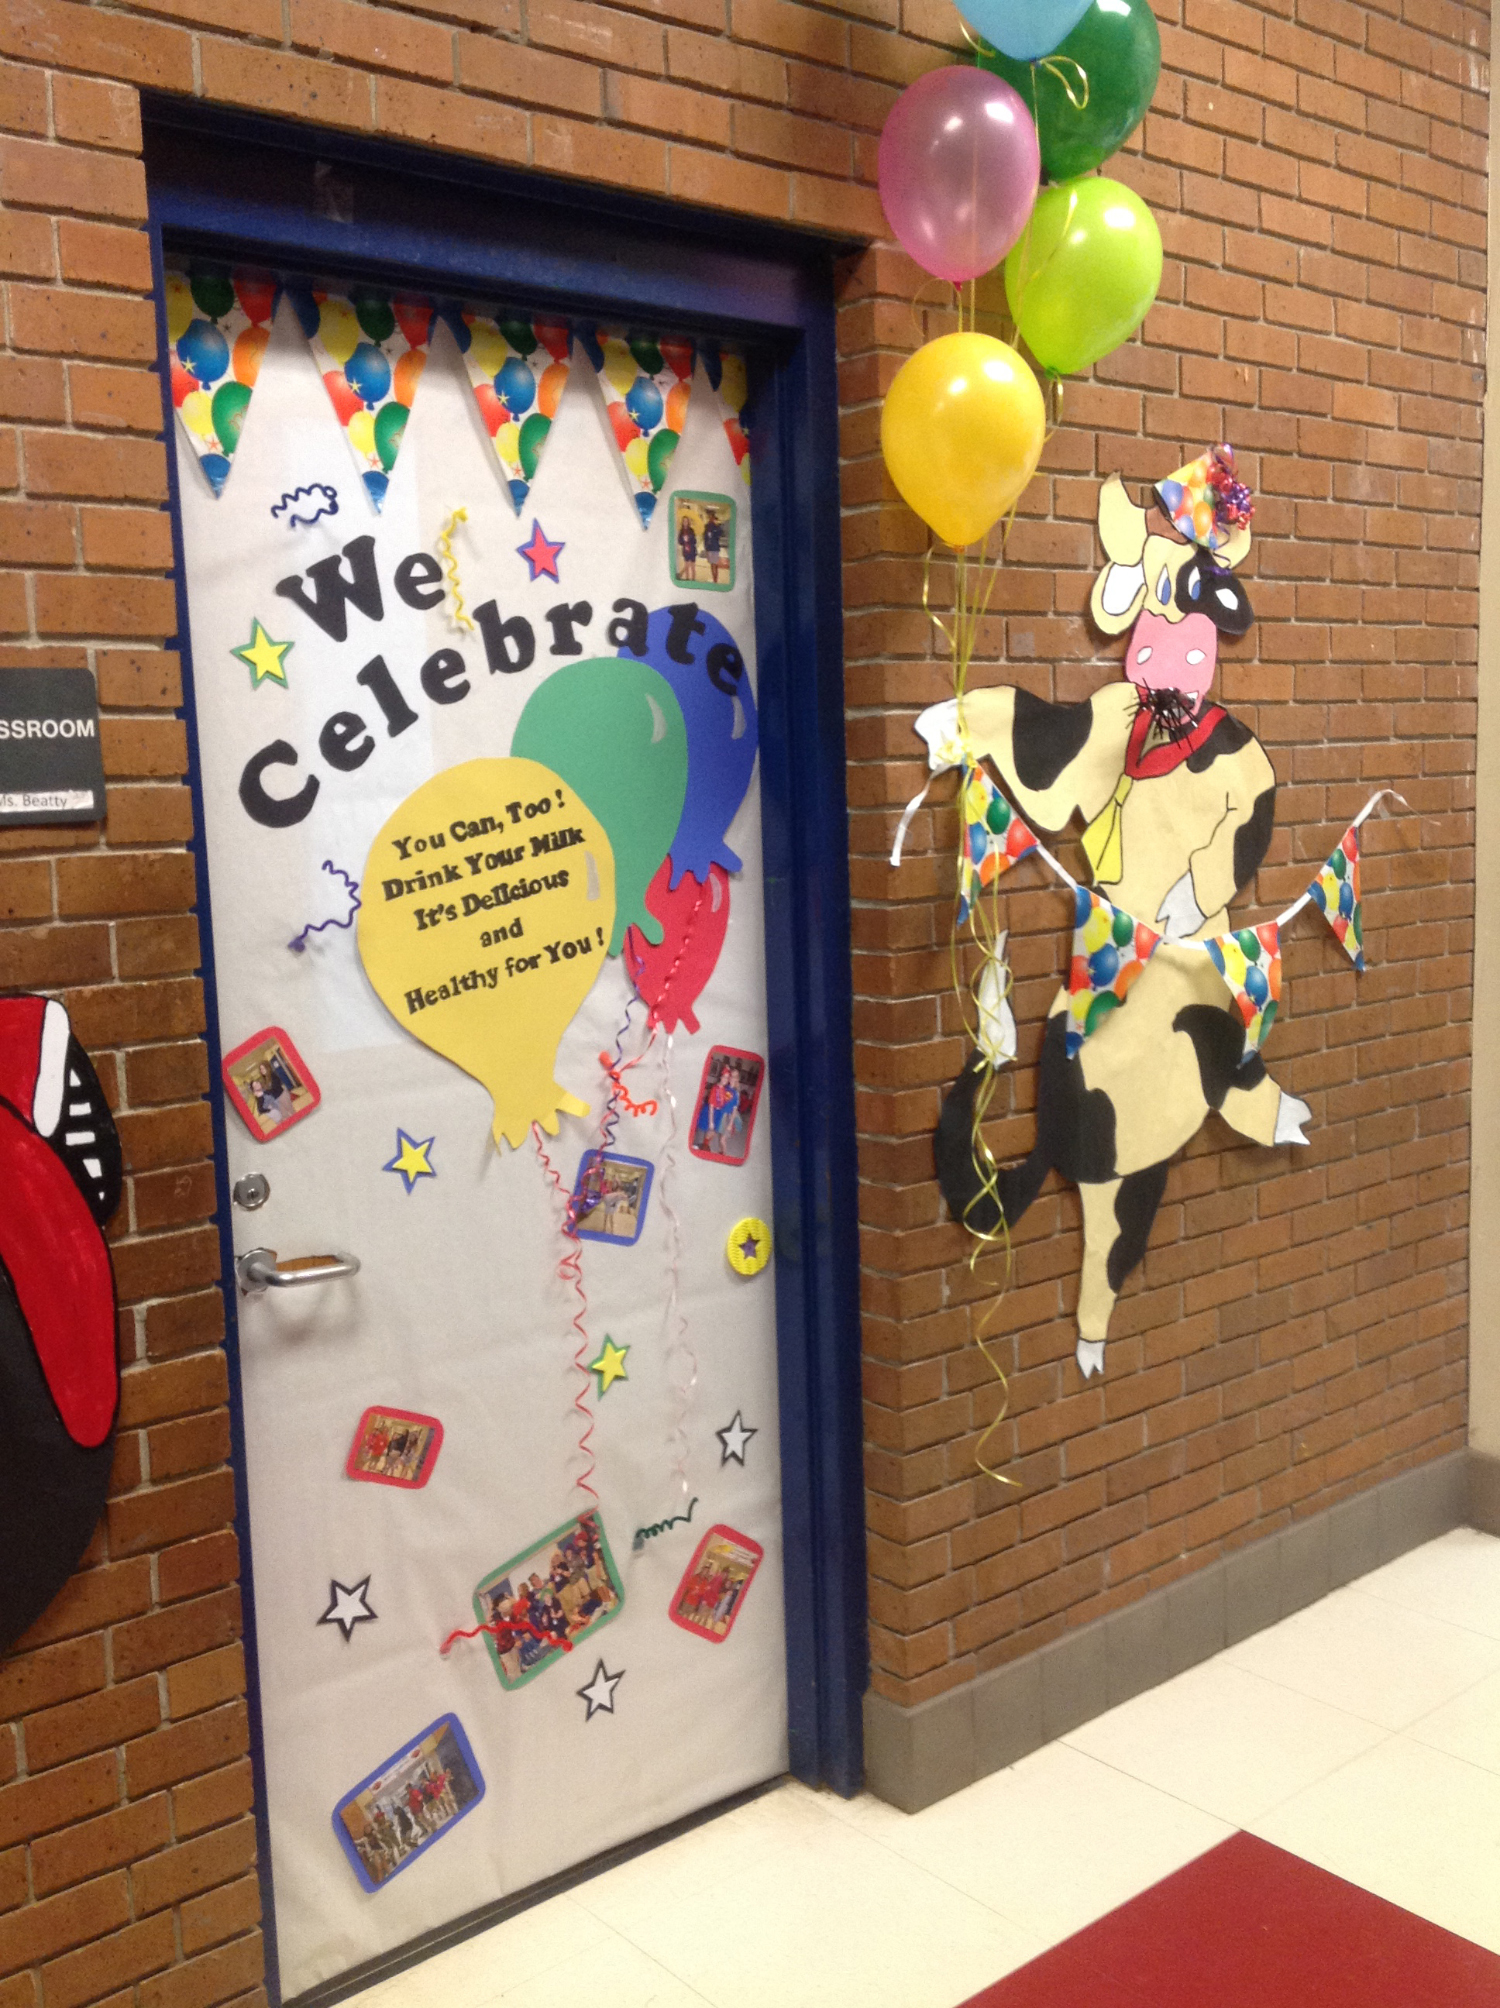 Folsom Jr. High School's Milk Day Door Decorating Contest Image 3